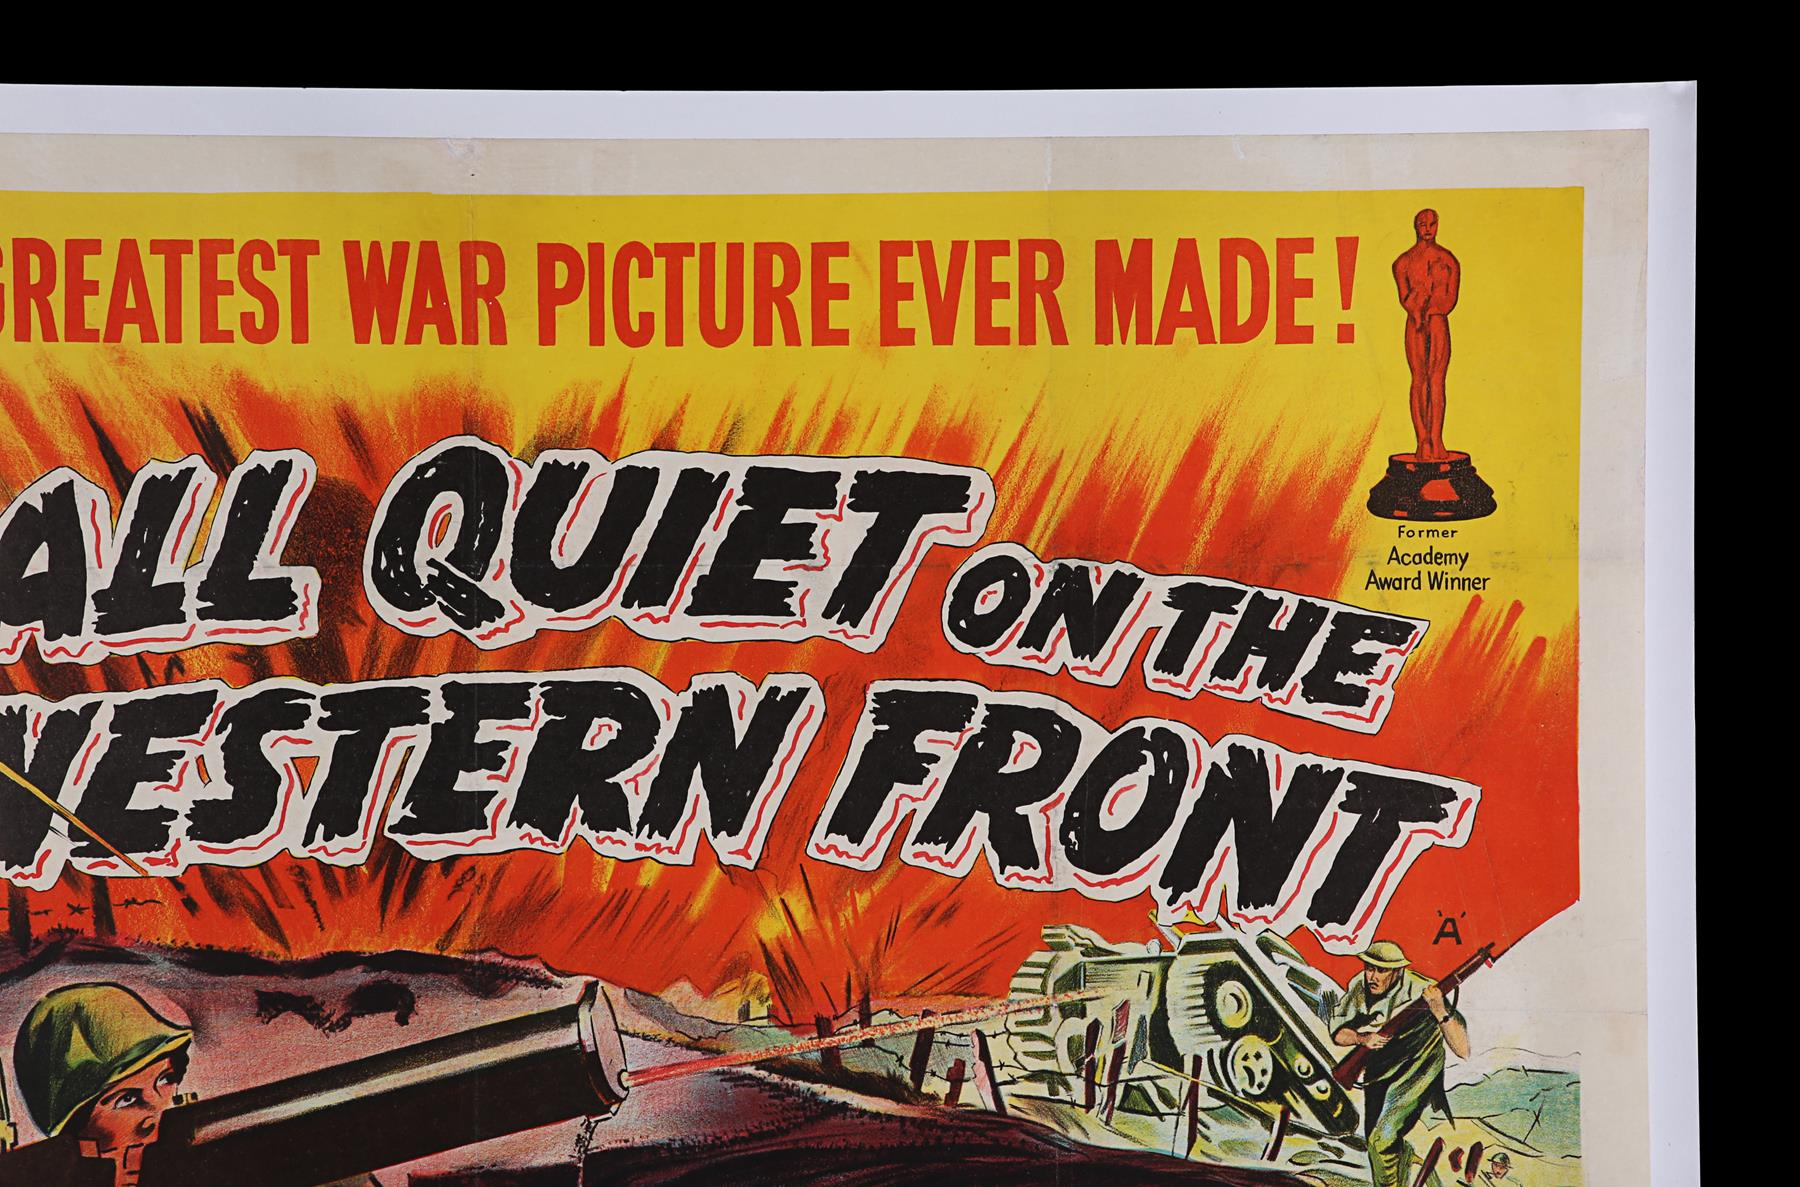 ALL QUIET ON THE WESTERN FRONT (1930) - UK Quad, 1950 - Image 3 of 6